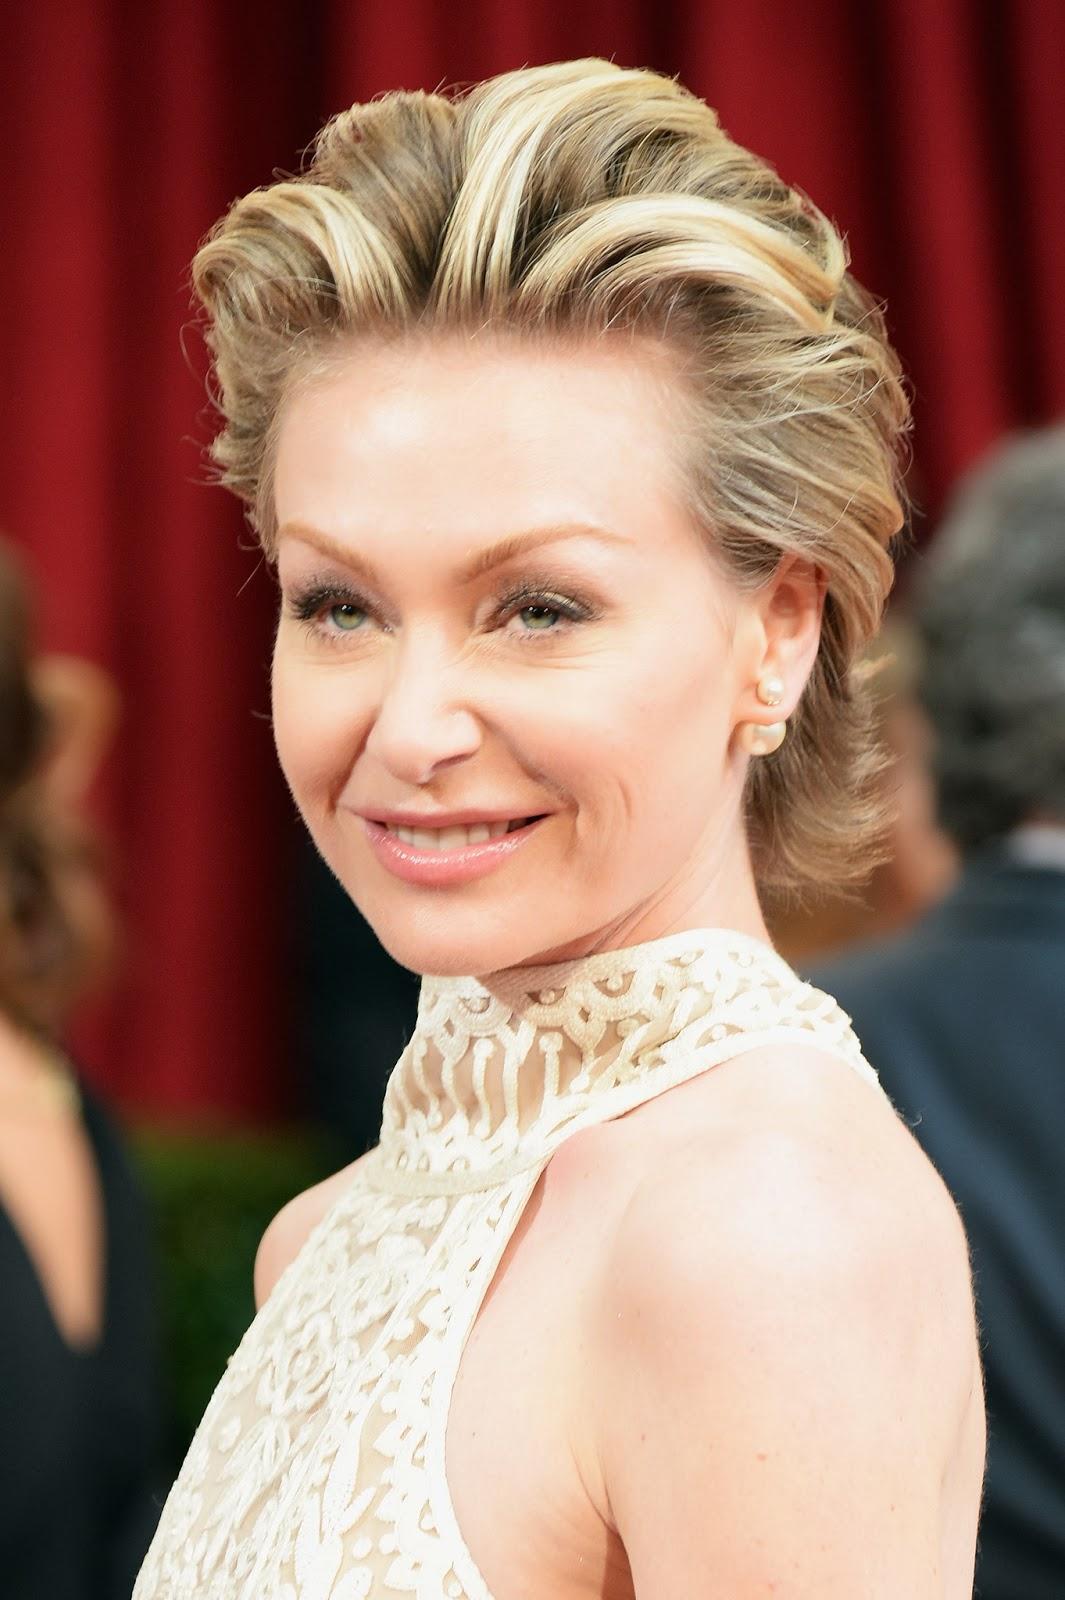 Portia De Rossi Baby: The Beal Family